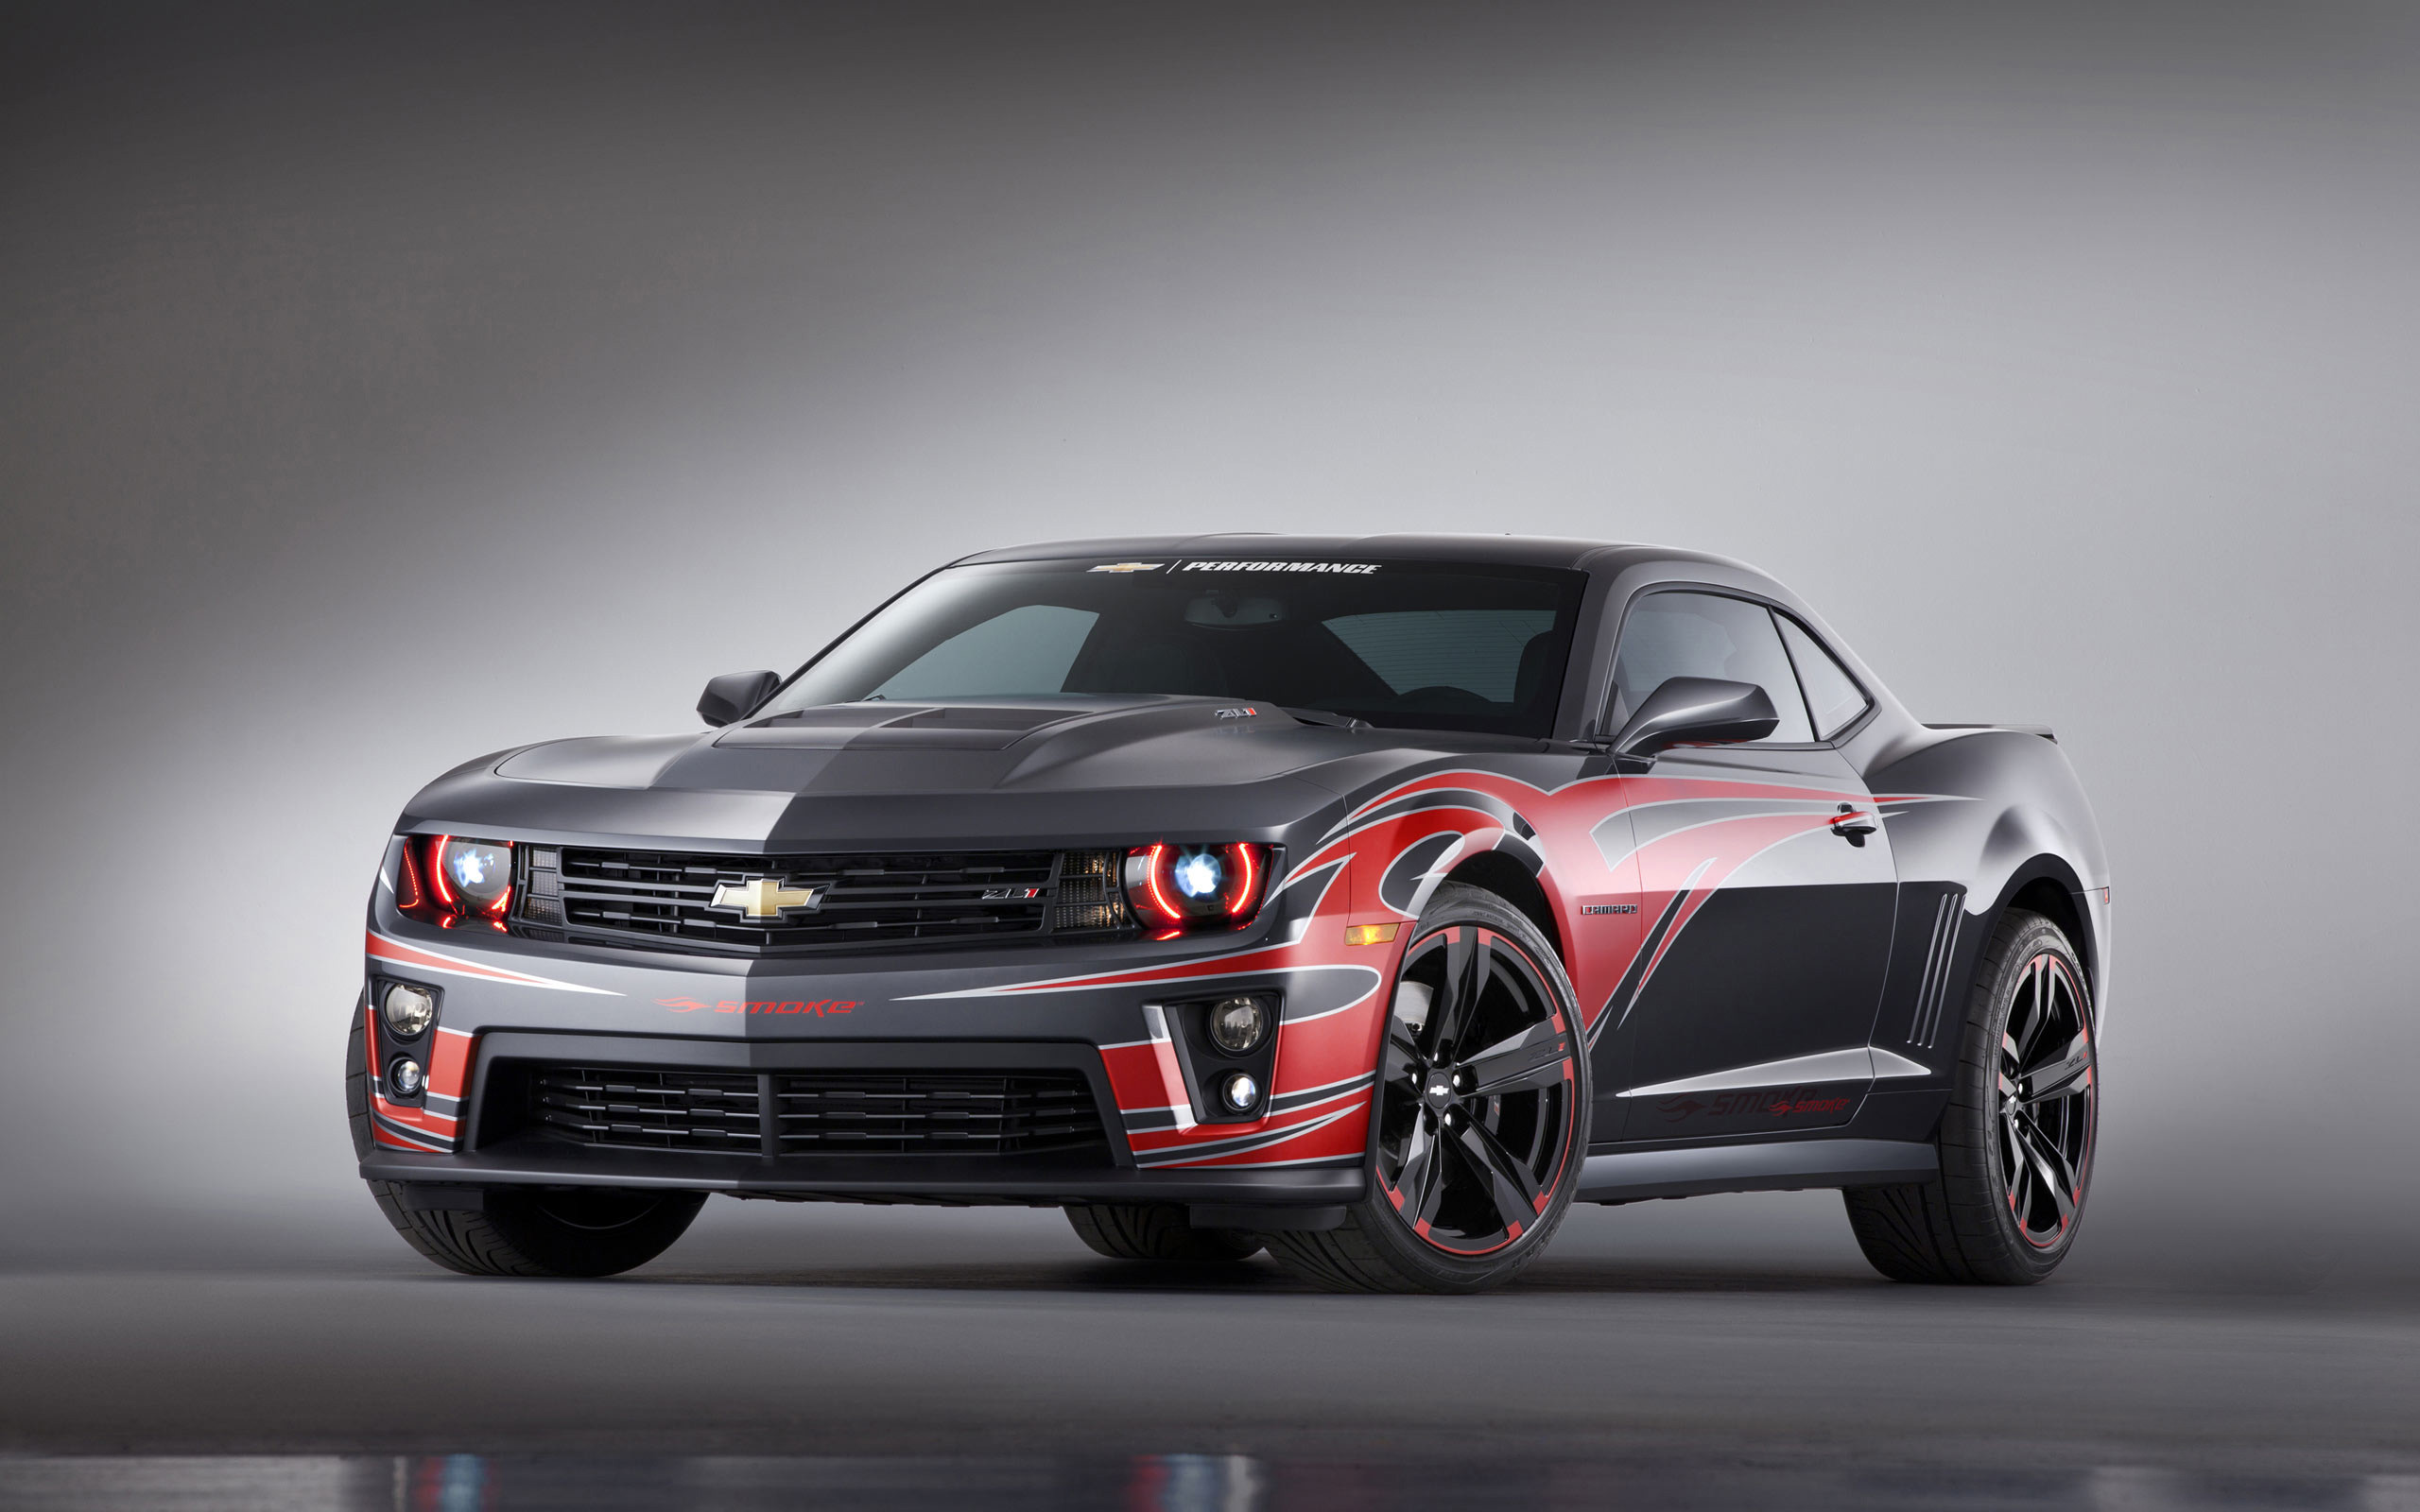 Res: 2560x1600, Chevrolet Camaro ZL1 Wallpapers 18 - 2560 X 1600